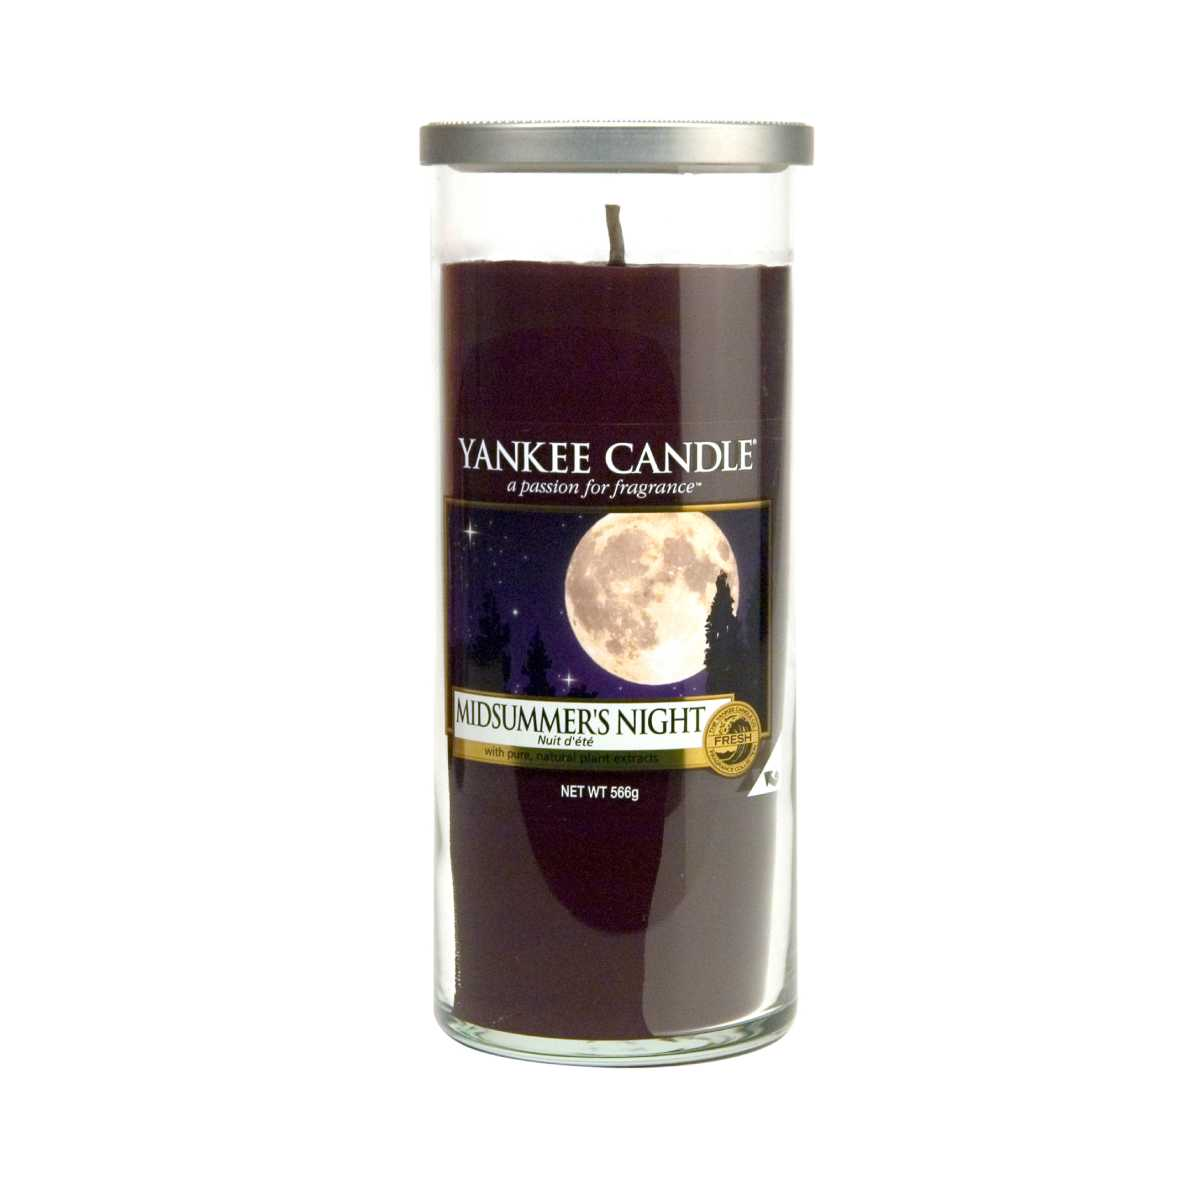 YANKEE CANDLE Vonná svíčka Midsummers Night – L